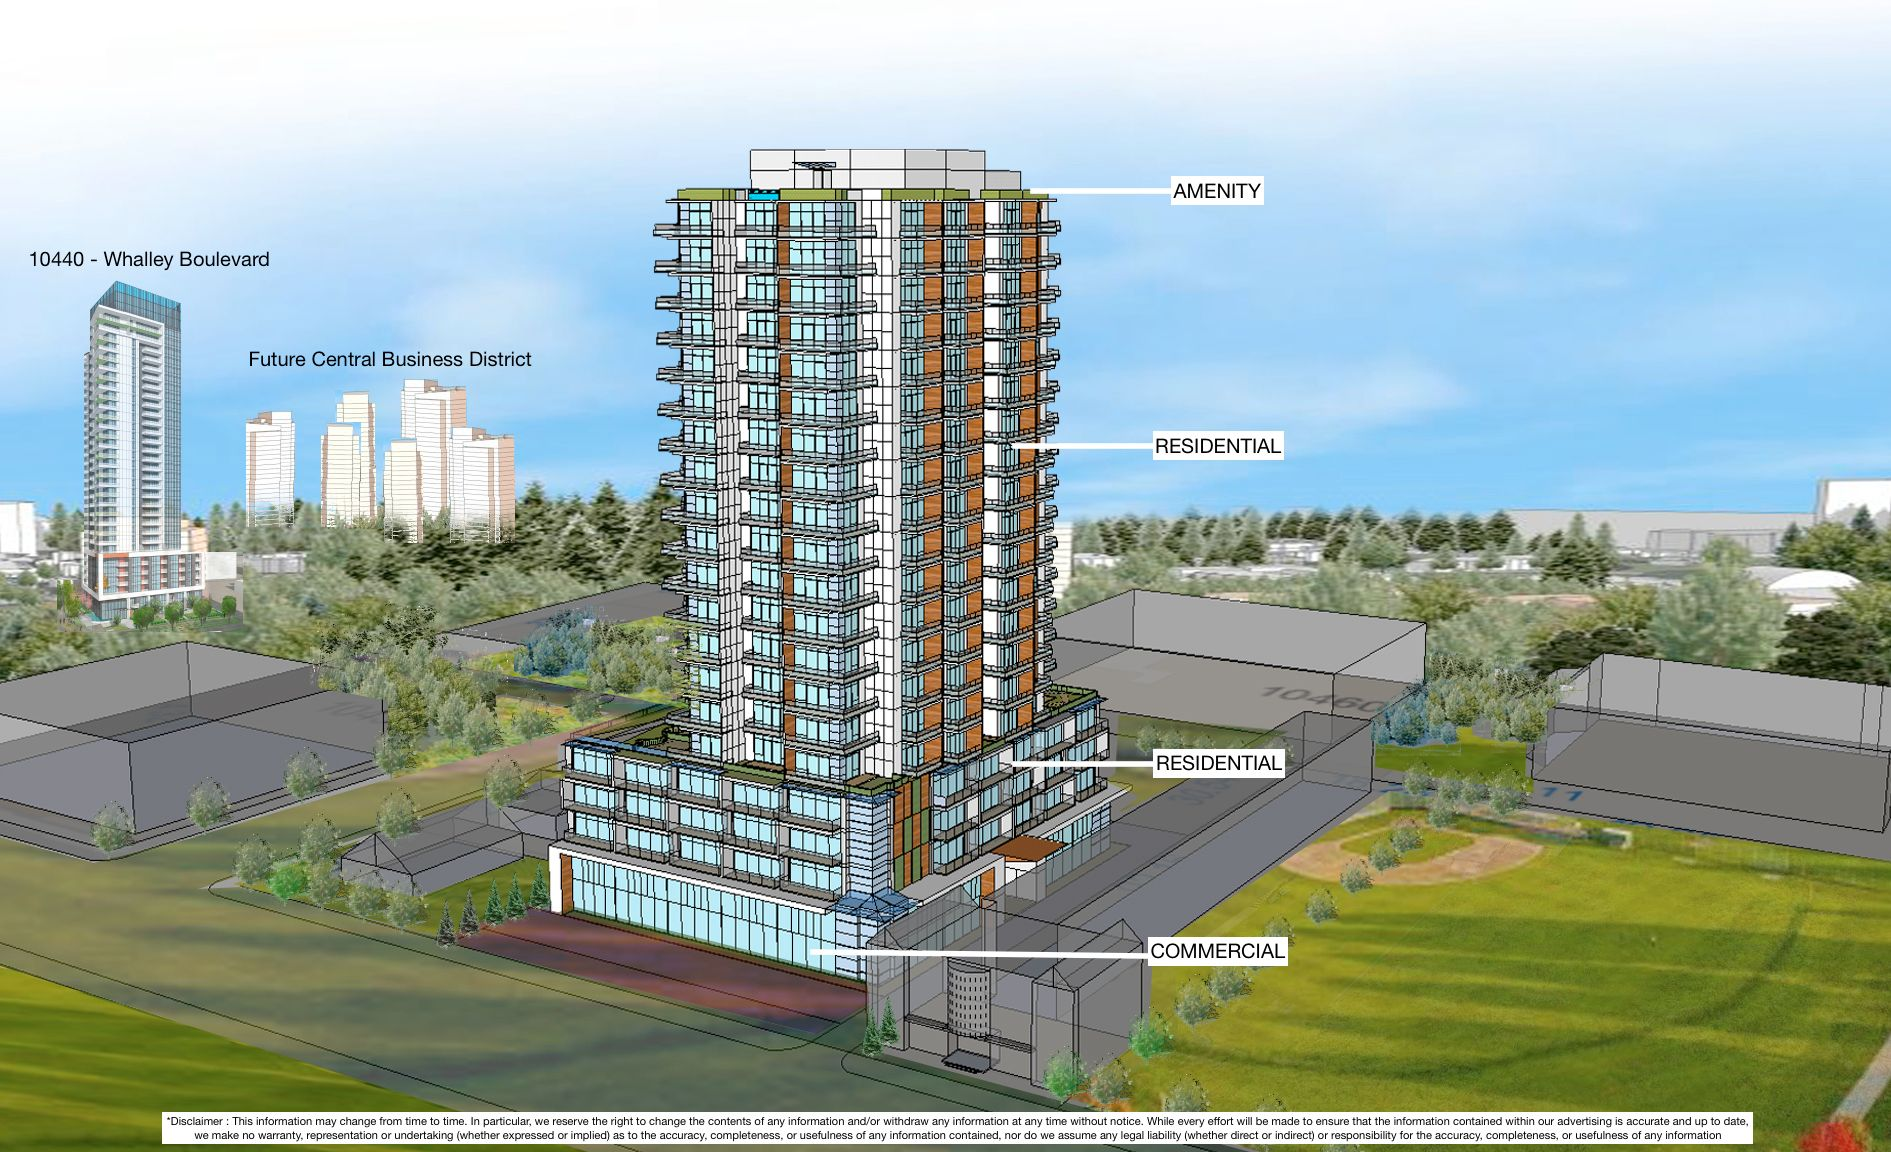 Main Photo: 13927 104 Avenue in Surrey: Whalley Land Commercial for sale (North Surrey)